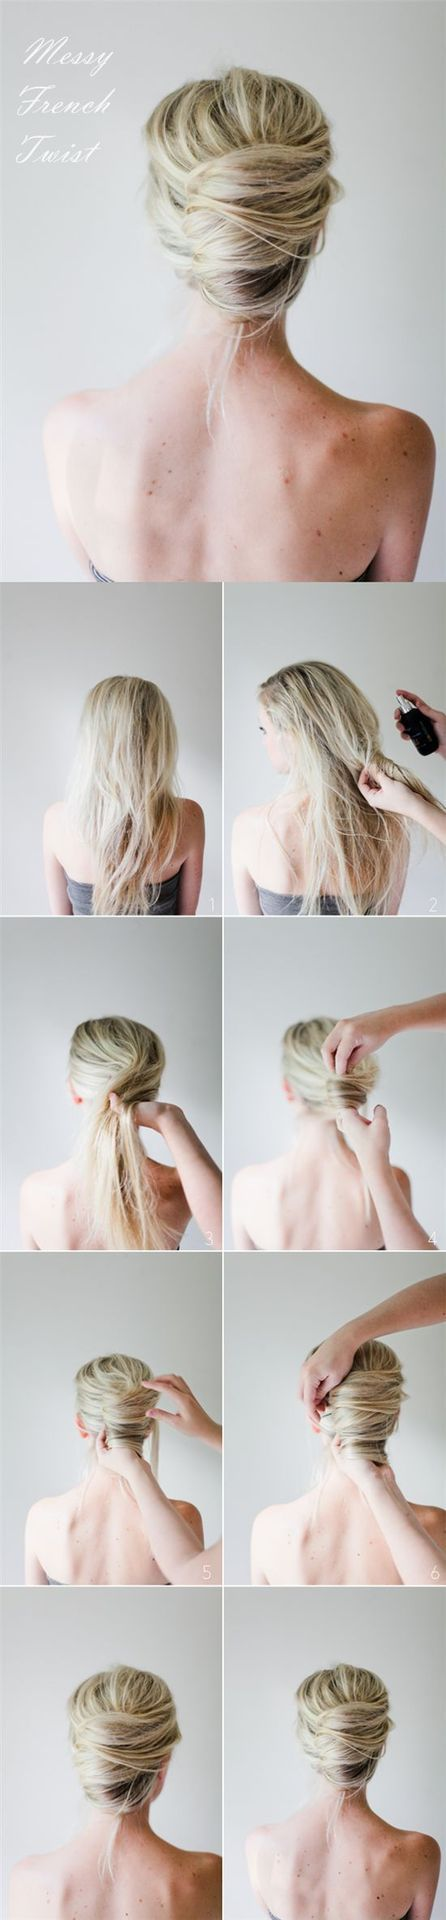 messy french twist hairstyles